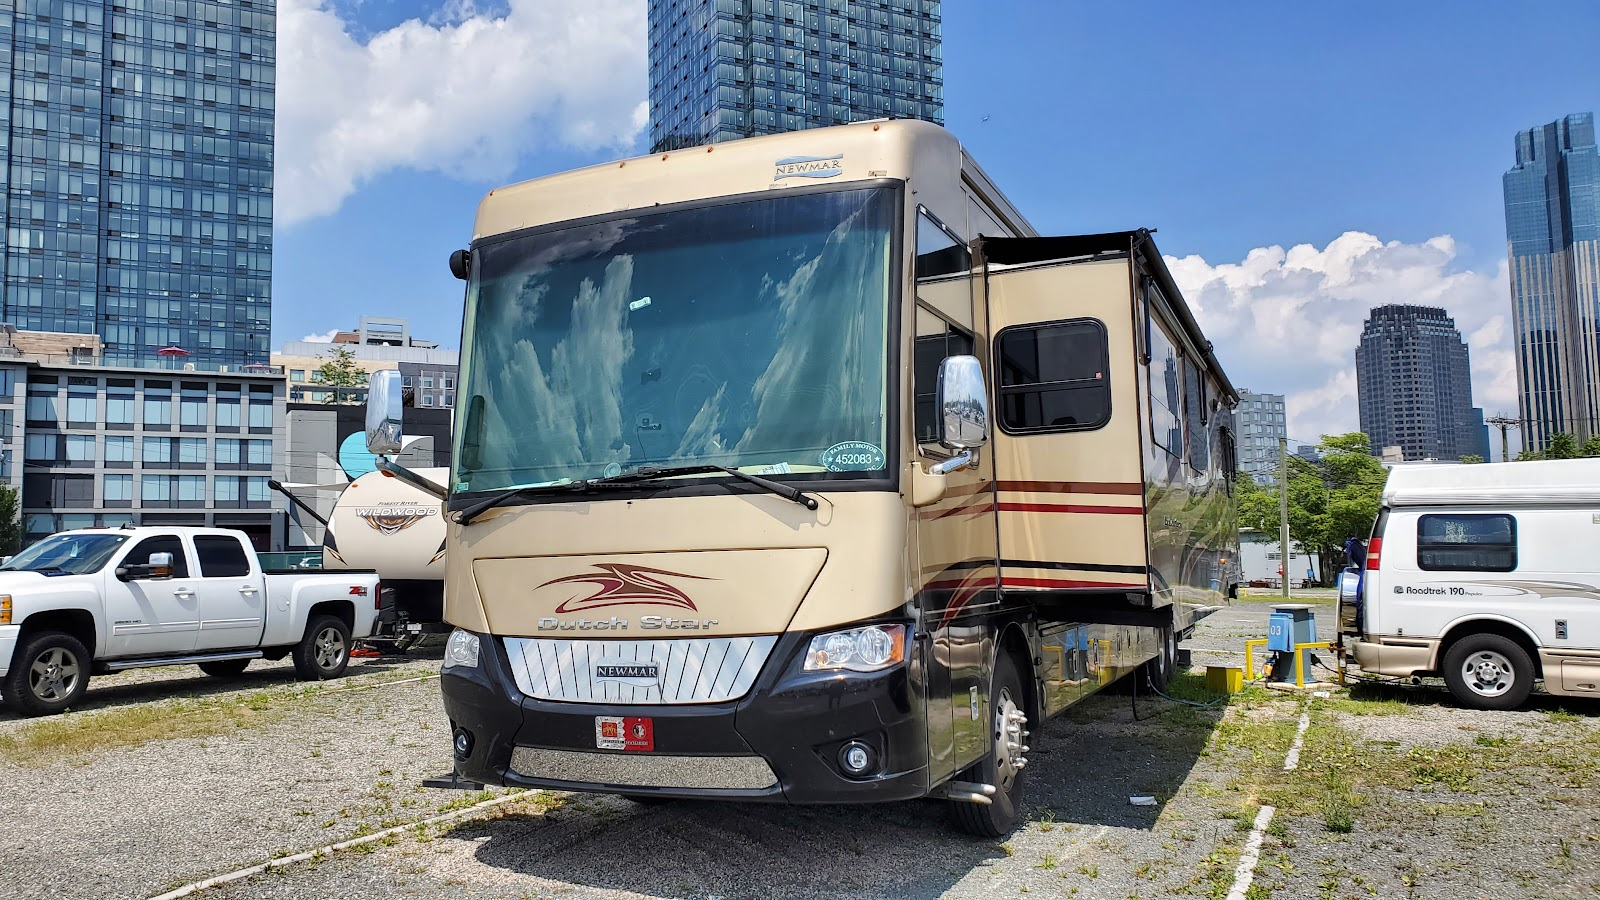 Class A RV parked at campground in NYC